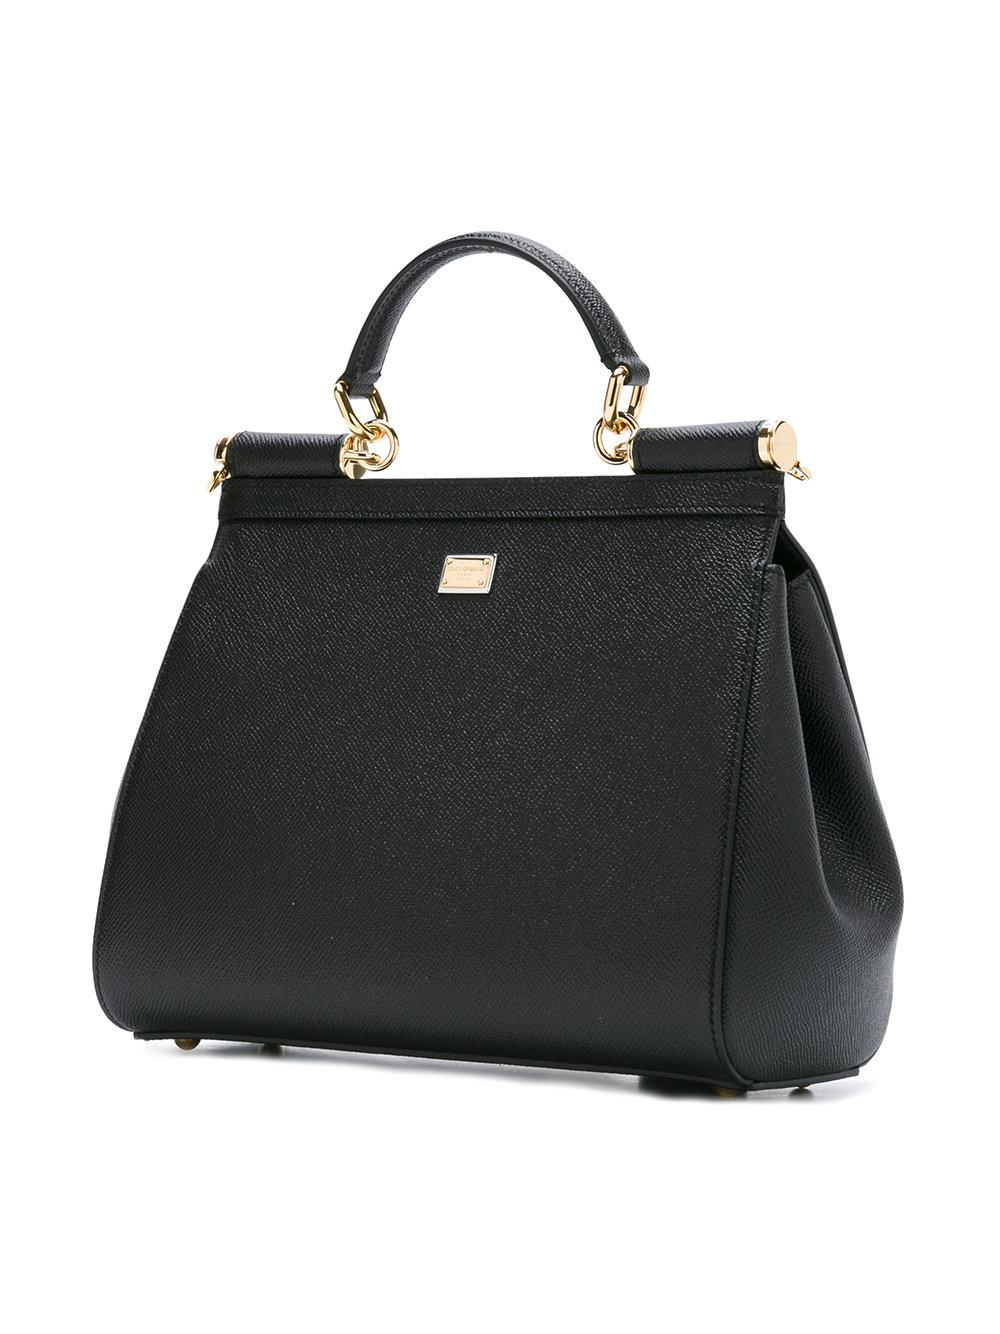 Dolce & Gabbana Leather #dg Family Patch Sicily Tote in Black